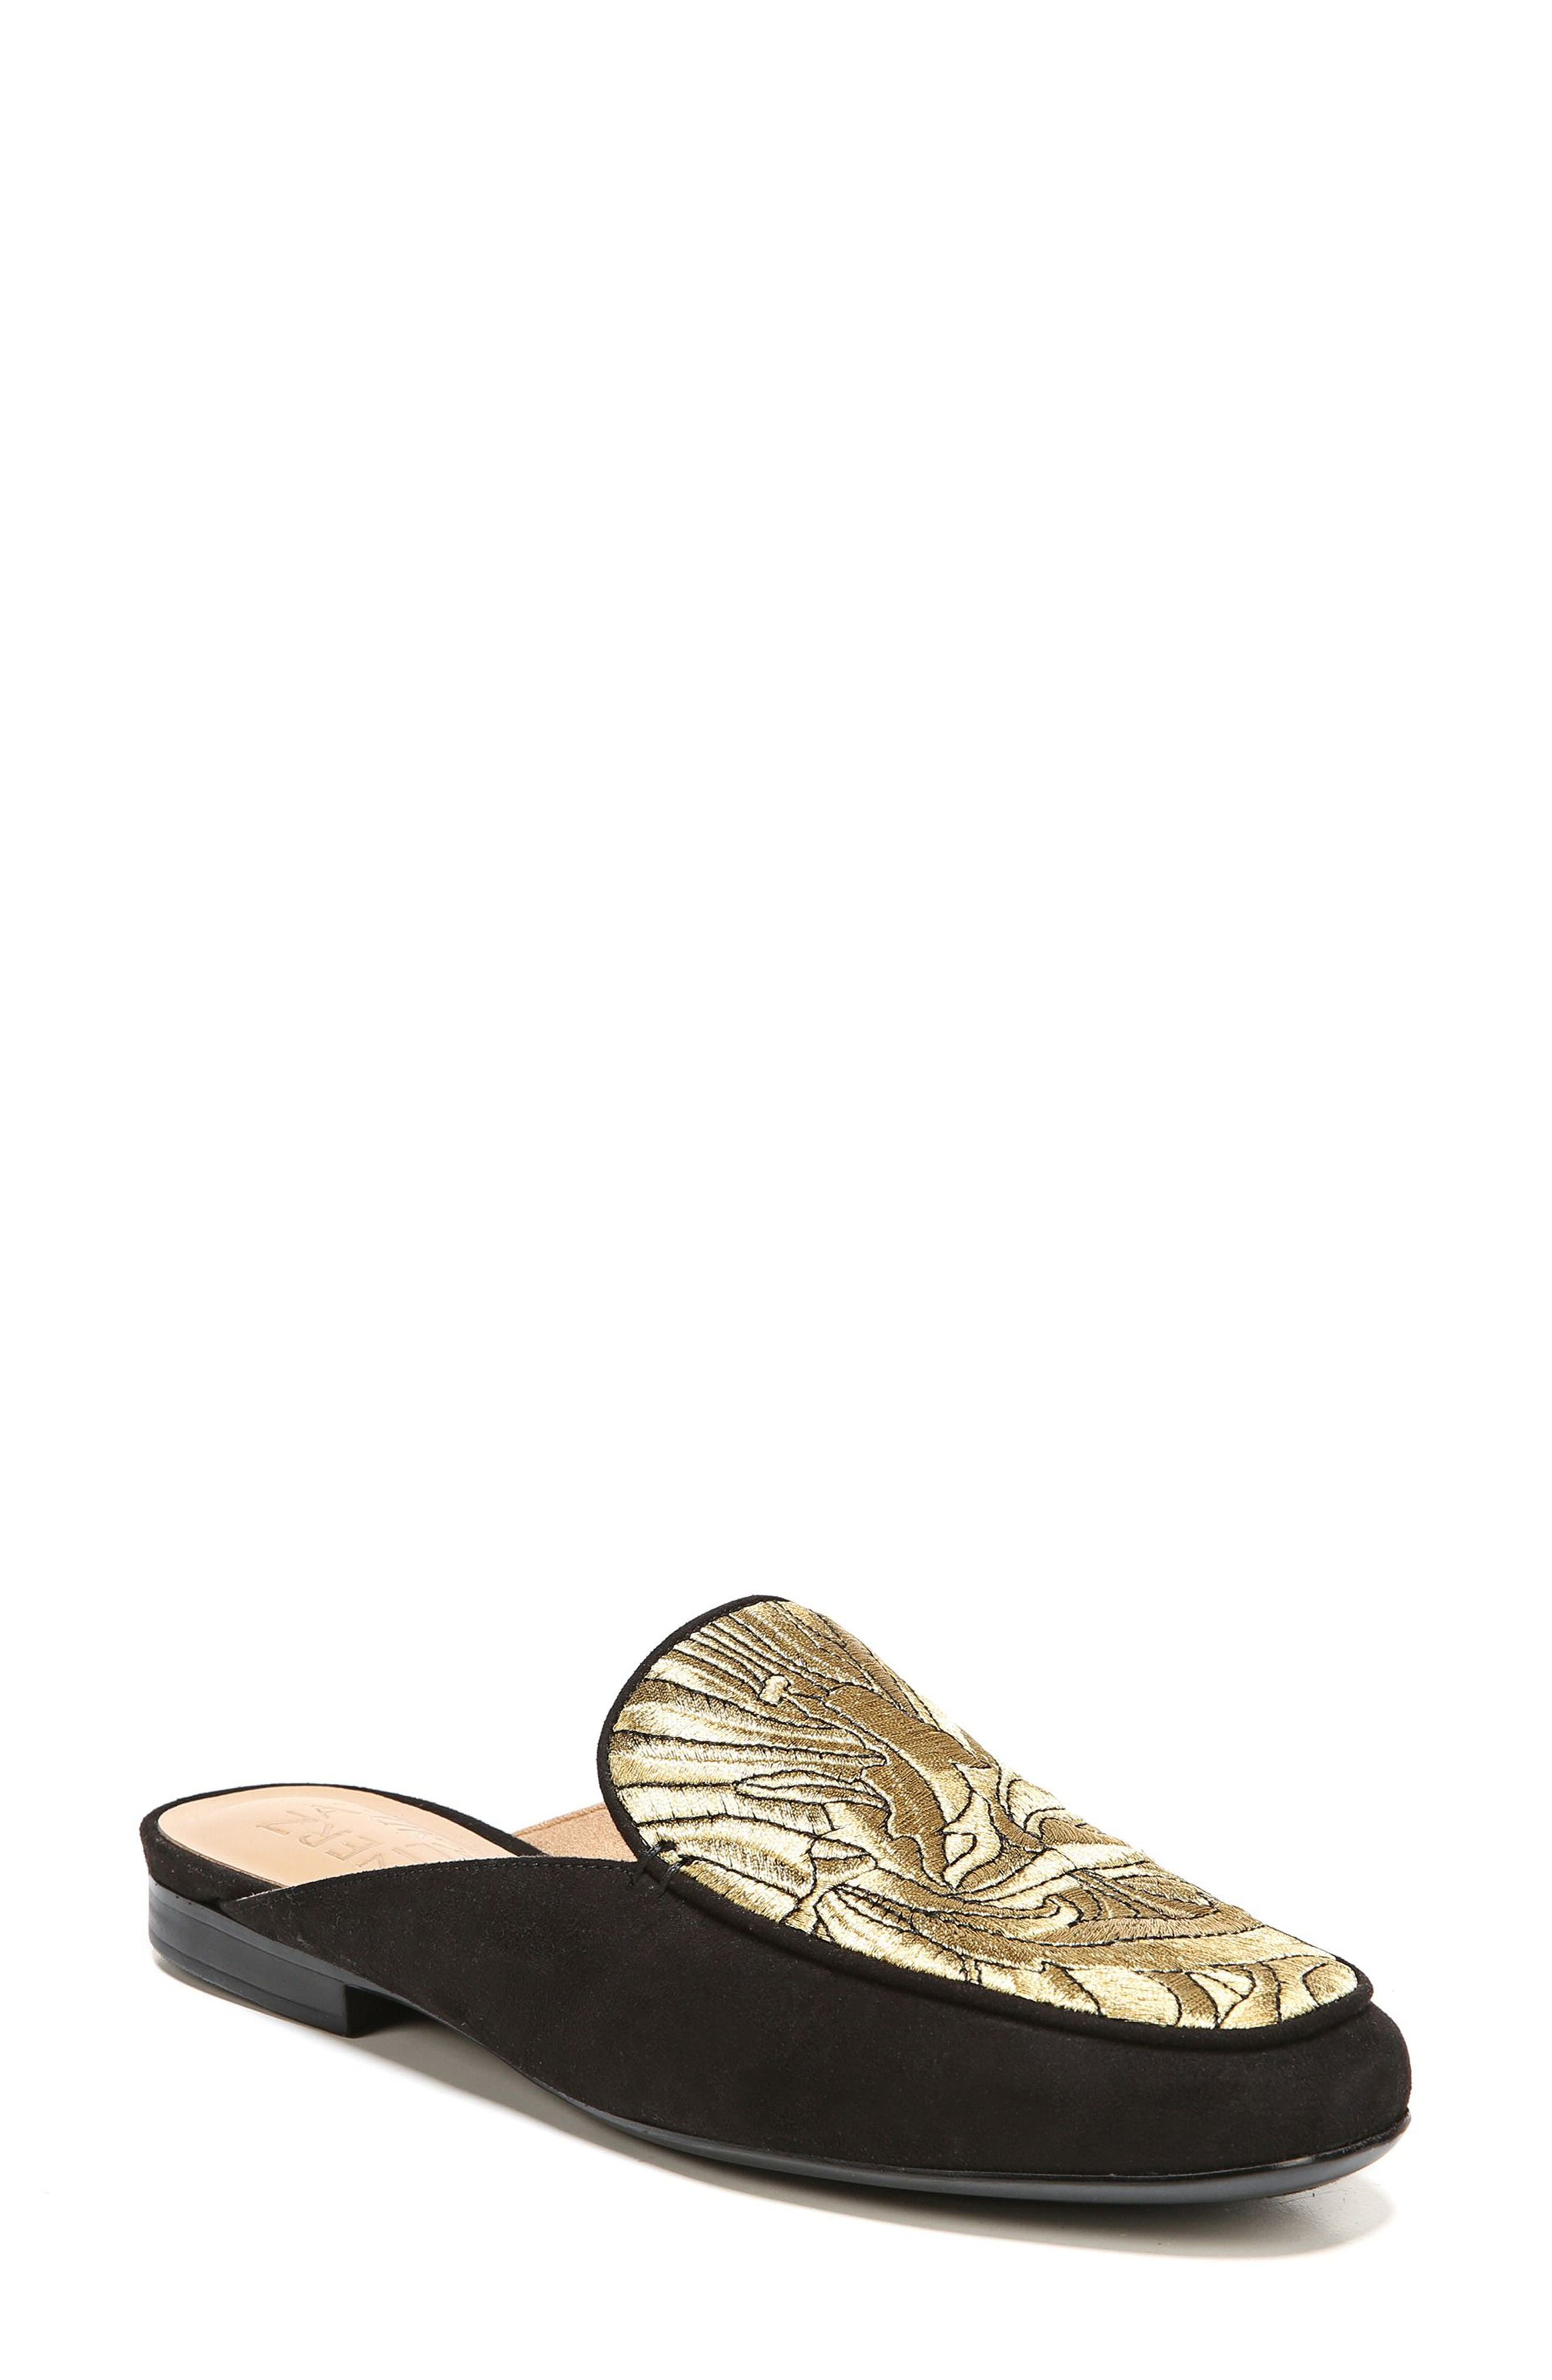 Eden II Embroidered Mule,                         Main,                         color, Black/ Gold Leather